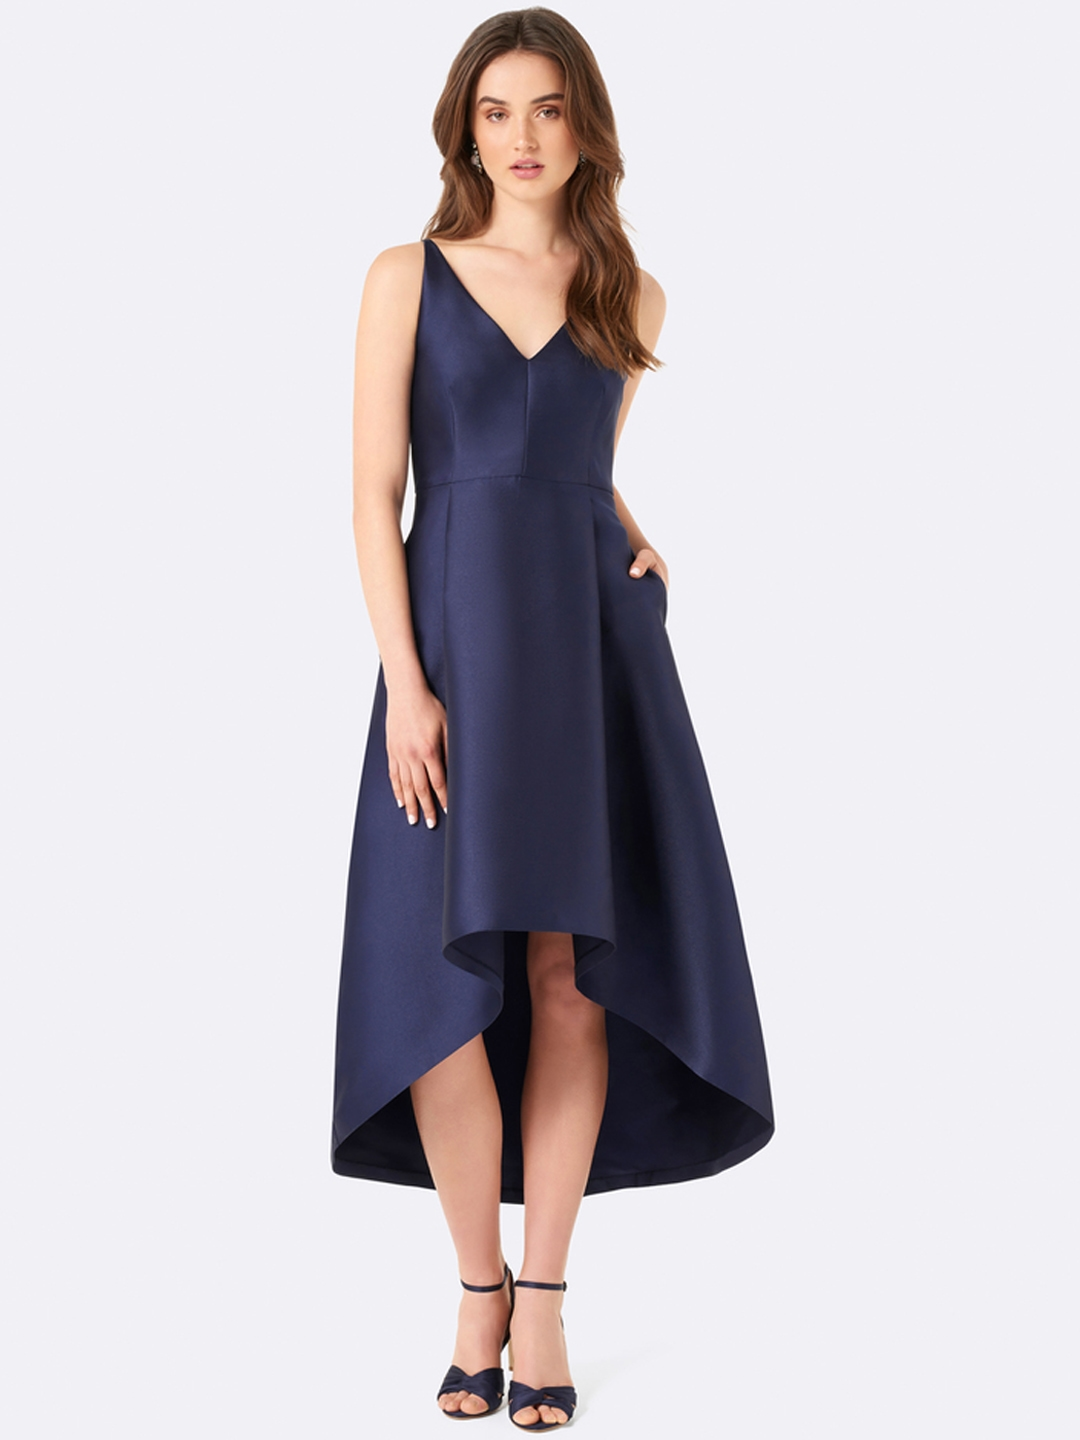 1a7916f91859 Buy Forever New Women Navy Blue Solid Fit And Flare Dress - Dresses ...